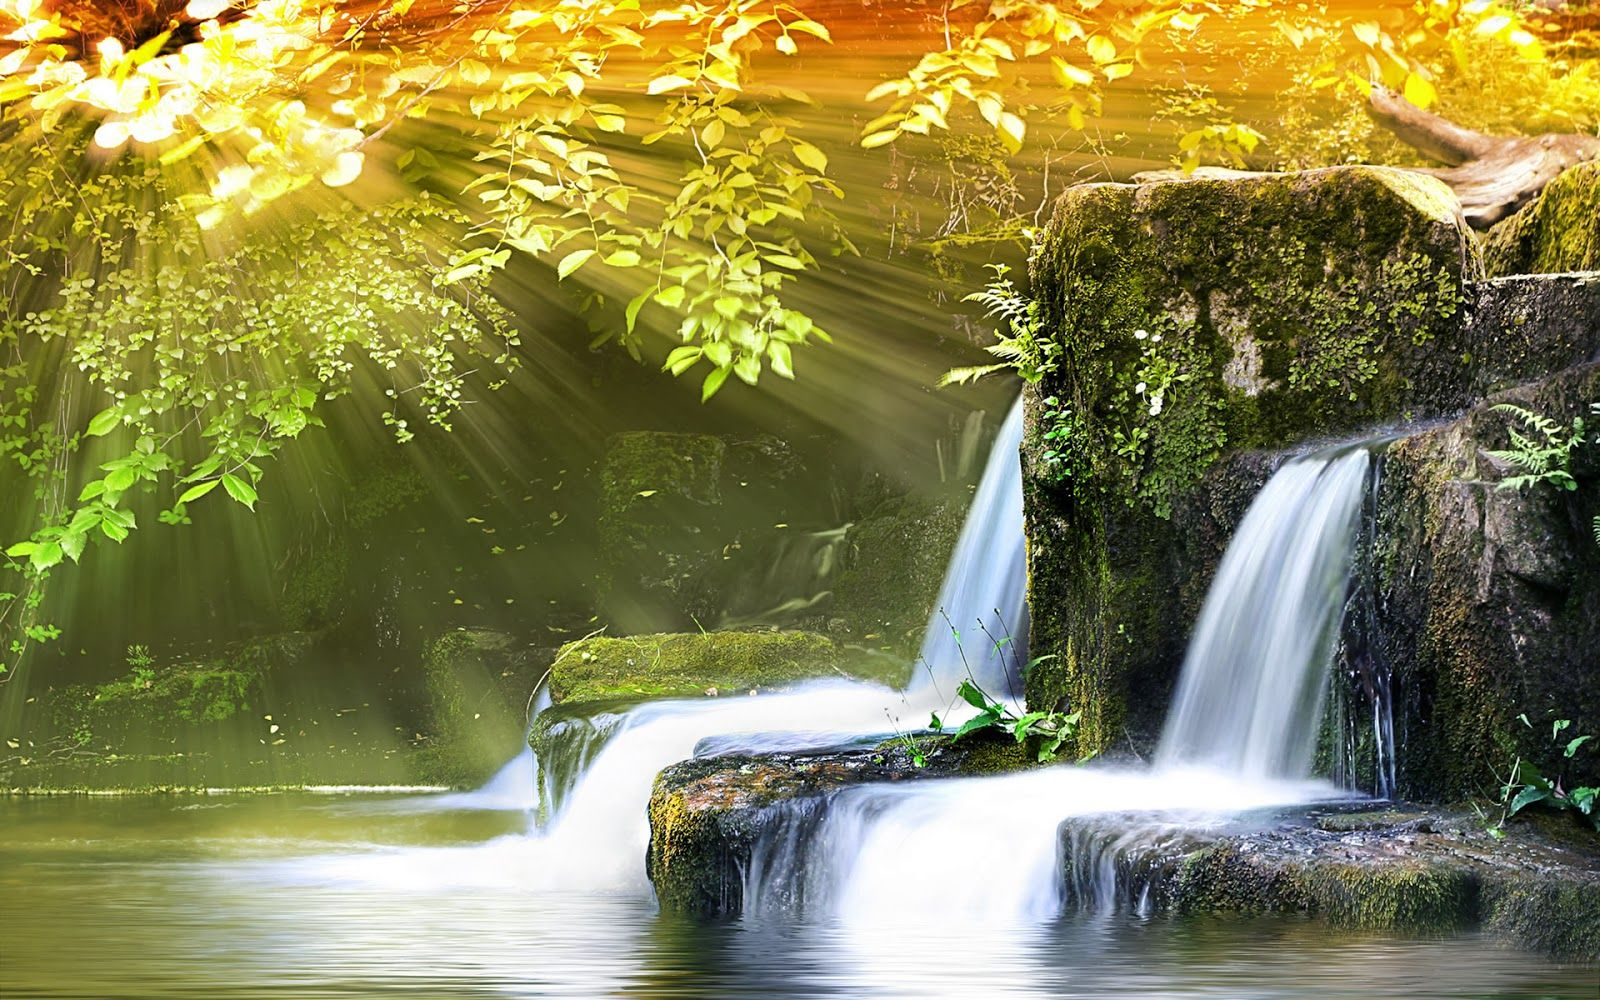 Beautiful Nature Wallpapers With Quotes For Facebook Cover Page Google Search Waterfall Nature Wallpaper Nature